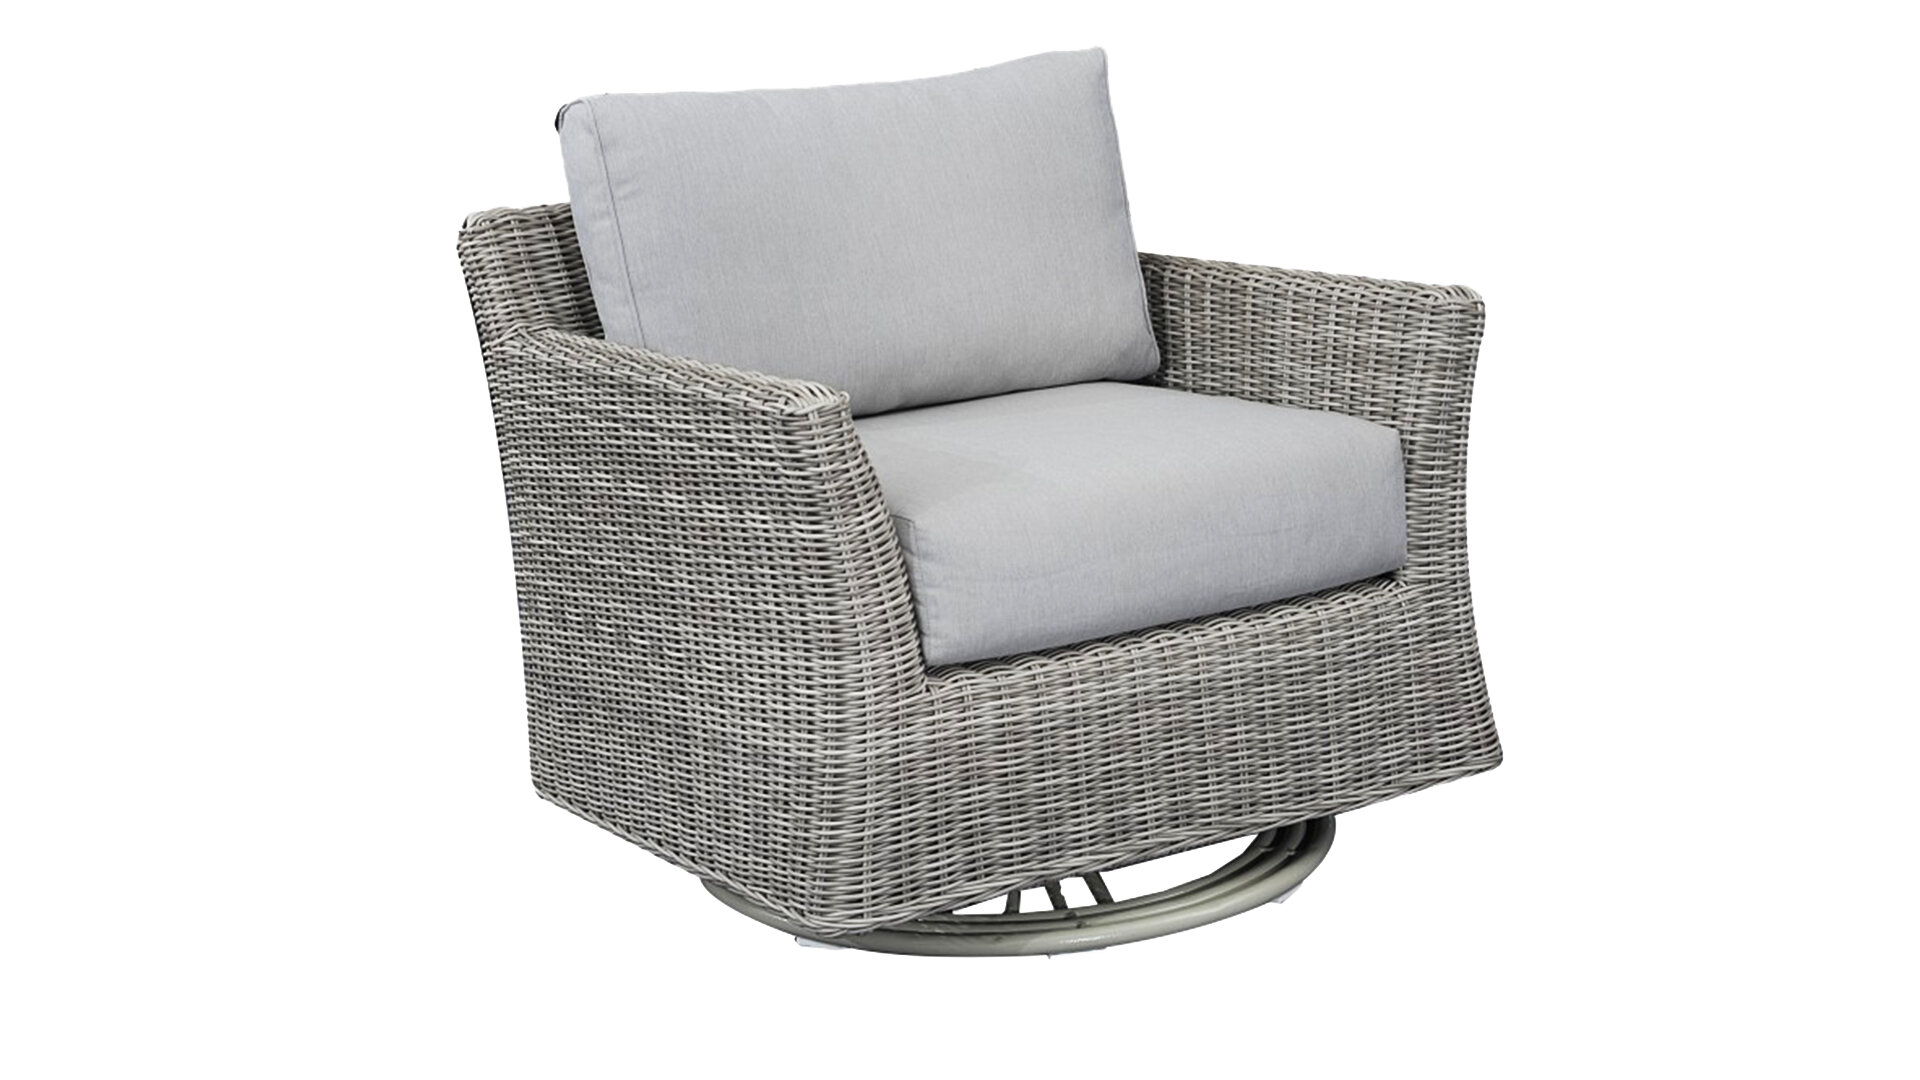 Terrific Soto Club Rocker Swivel Patio Chair With Cushions Gmtry Best Dining Table And Chair Ideas Images Gmtryco